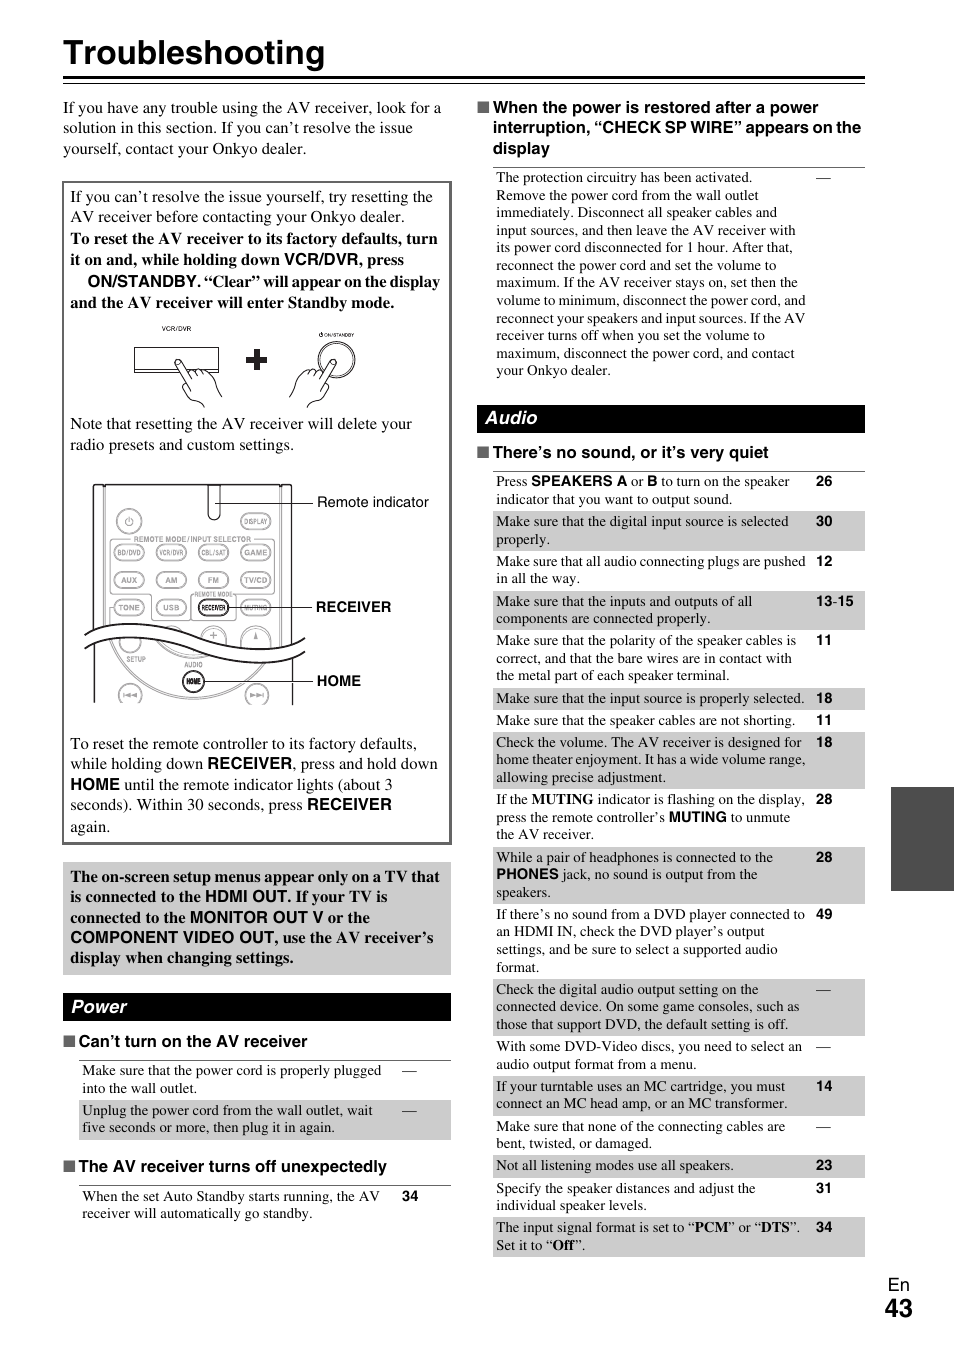 Appendix, Troubleshooting | Onkyo TX-SR309 User Manual | Page 43 / 56